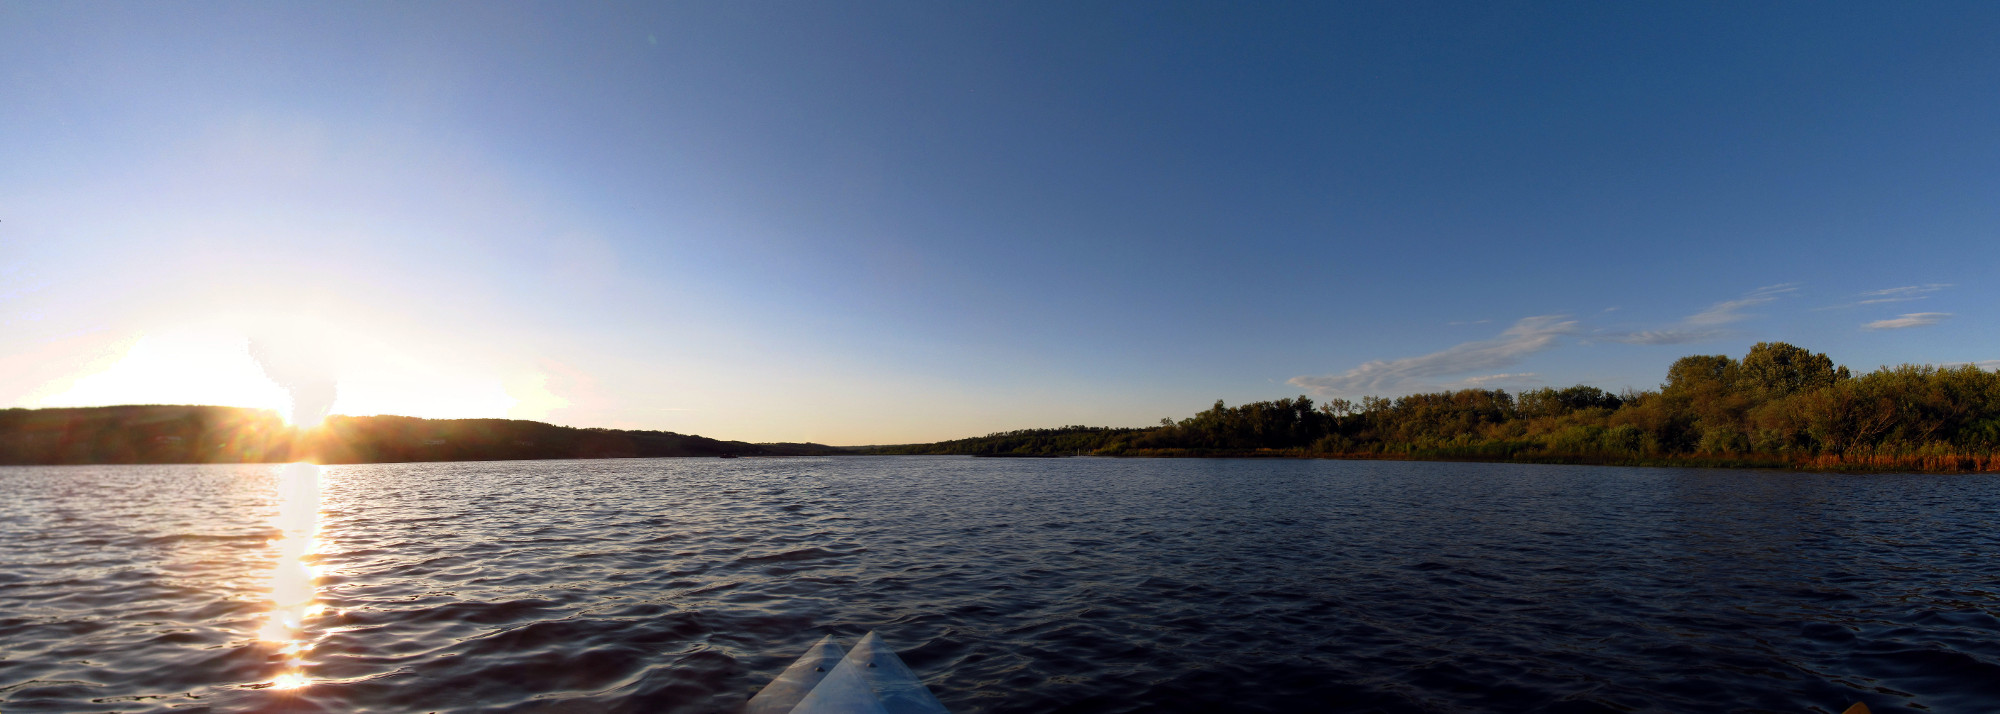 Panoramic view of Lake Minnedosa from a kayak